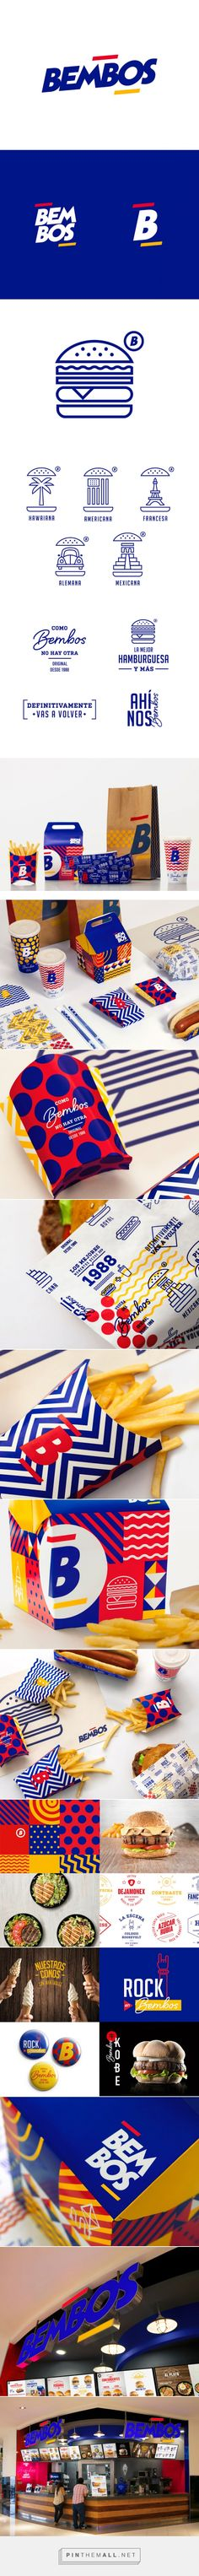 Bembos fastfood packaging designed by Infinito Consultores​ - http://www.packagingoftheworld.com/2015/09/bembos.html